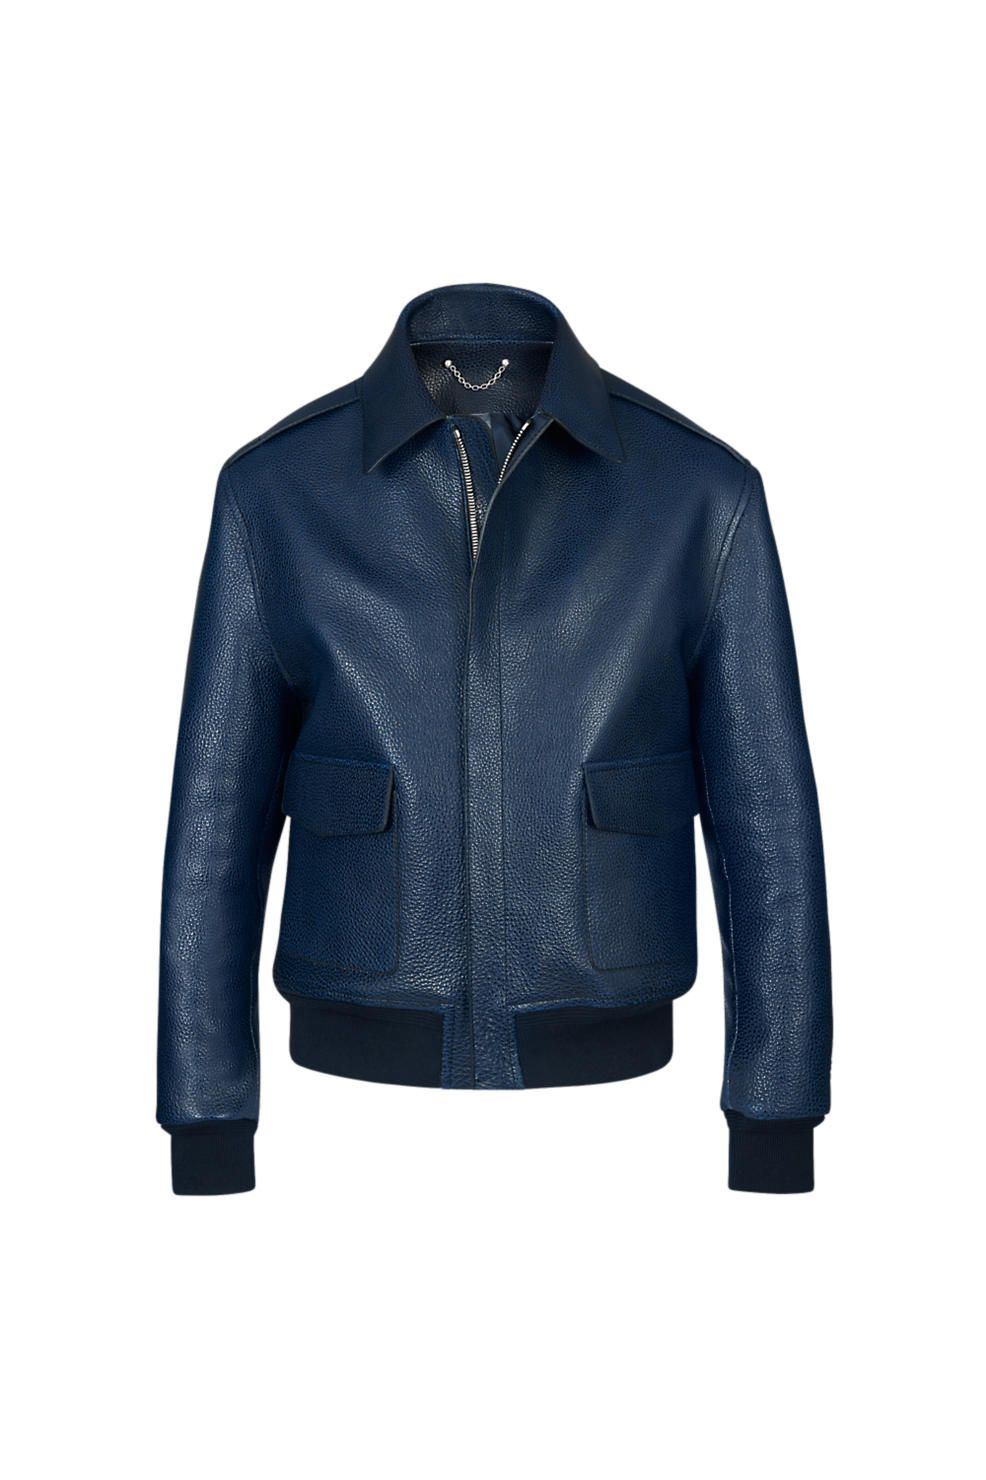 Pin On Leather Outerwear